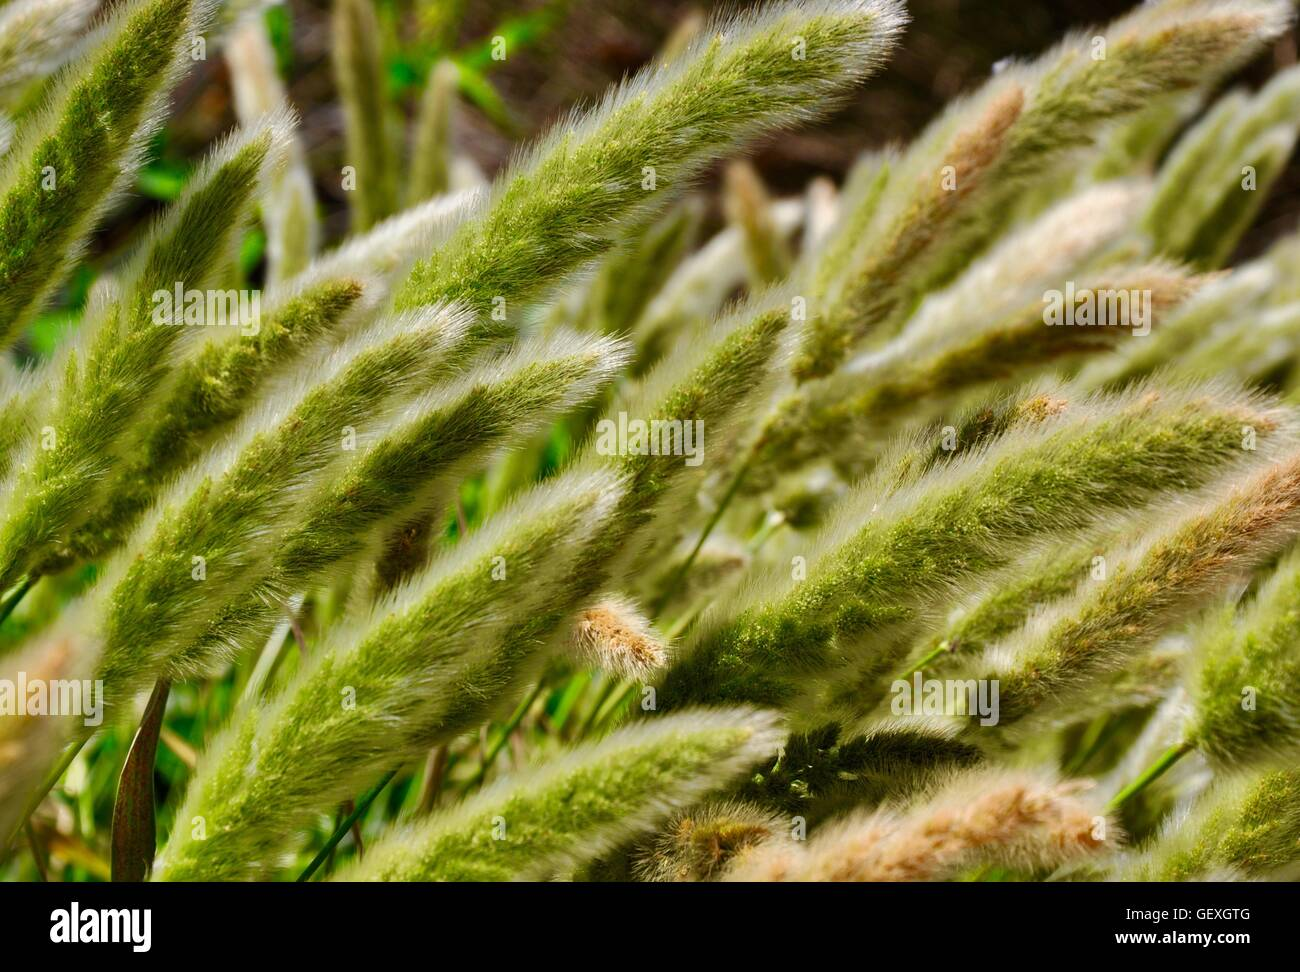 Closeup of soft green seed heads in native wild grasses in Western Australia. - Stock Image